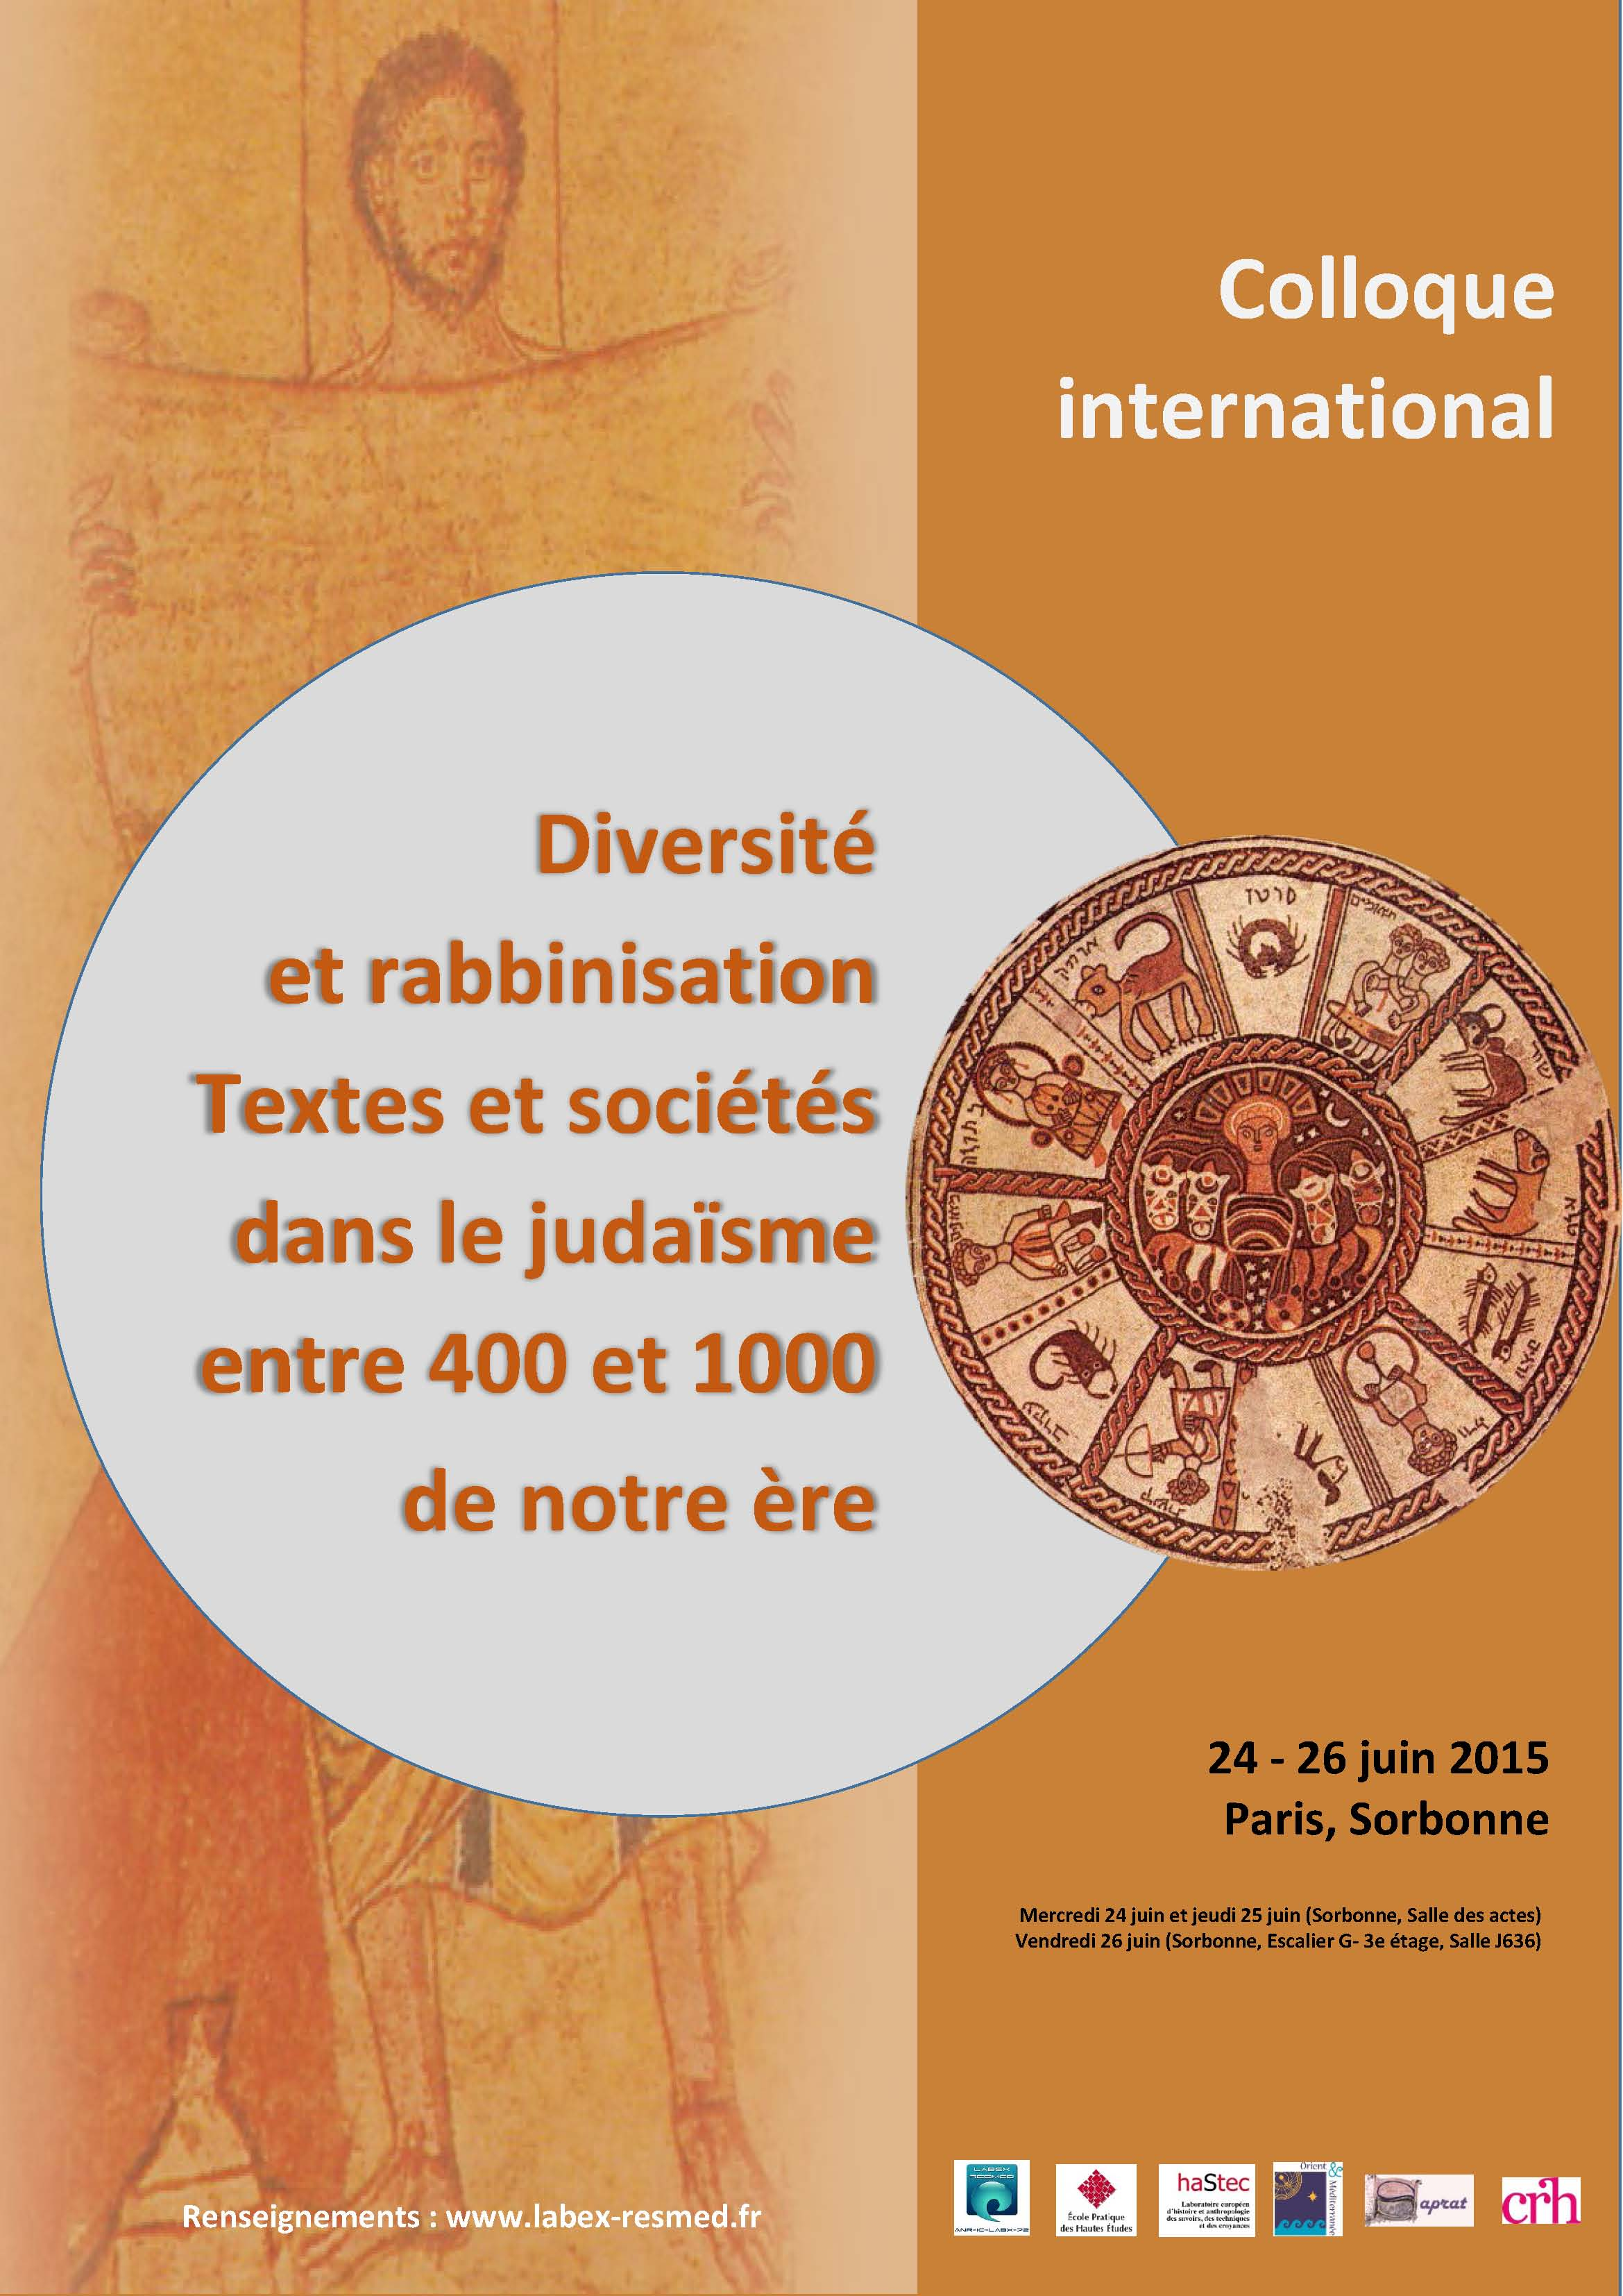 Colloque International-24/26 Juin-Paris